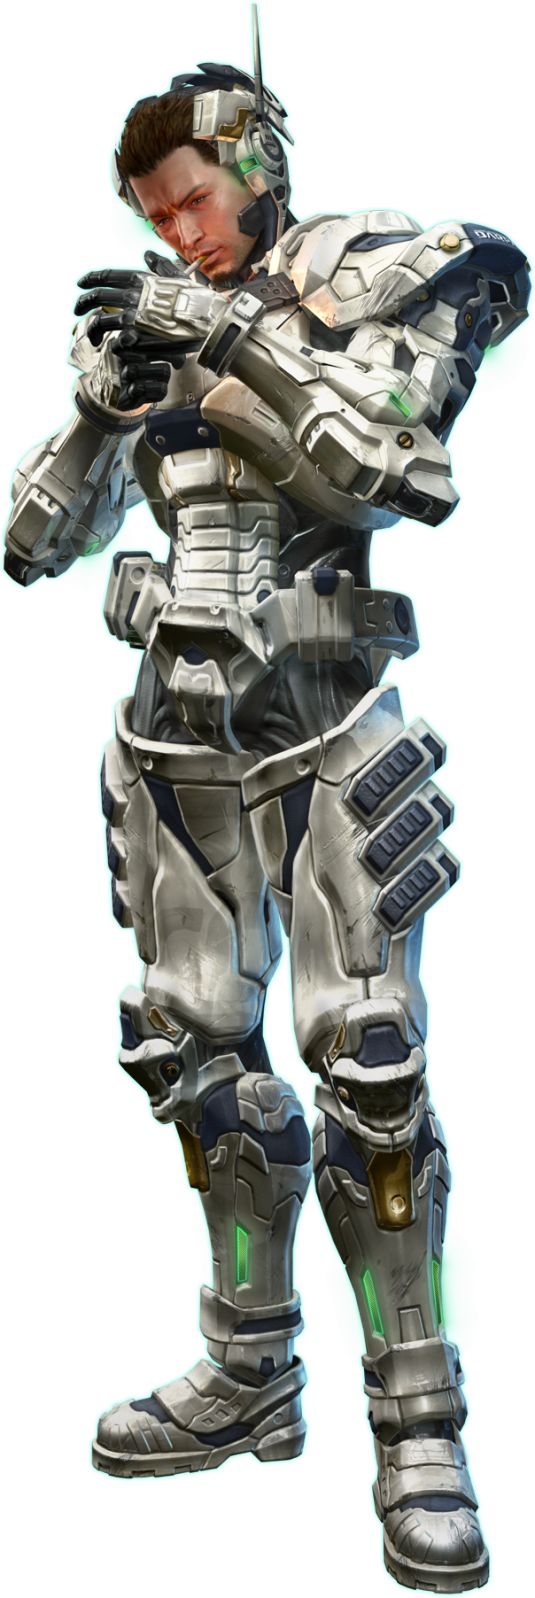 Shape of the forearm and head piece  Vanquish (PS3) – Review by Gorilla'T | Doohickey